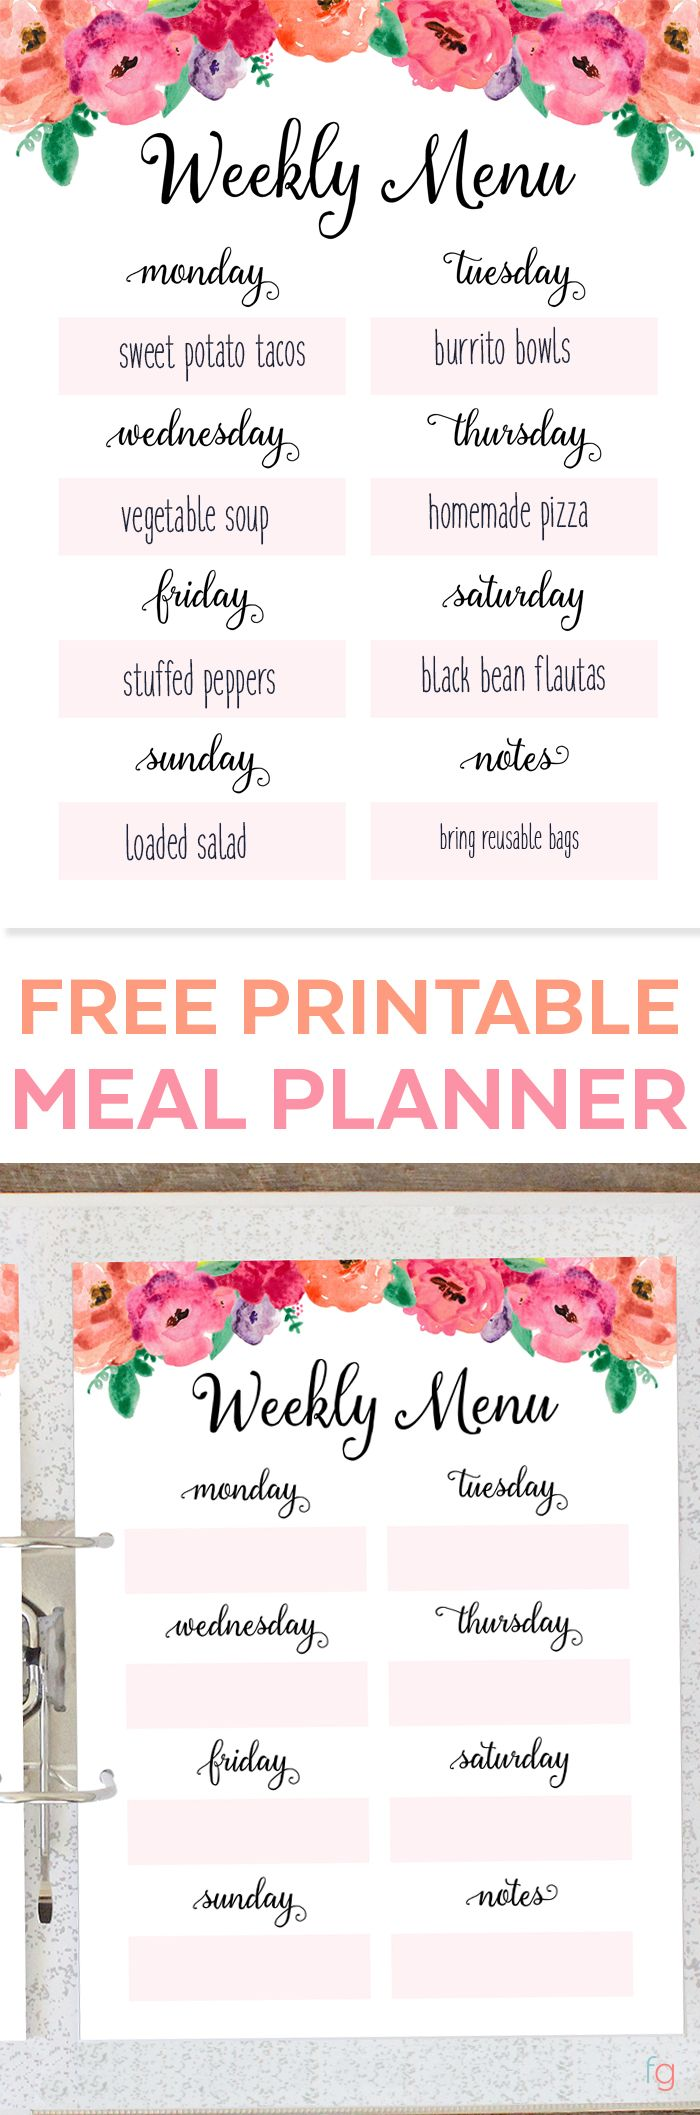 Weekly Meal Plan Printable Free Printable Weekly Meal Planner - Menu Plan Printable - Menu Planning Printable - Free Printables for Home - Organizing - Organization Ideas - Tap the pin if you love super heroes too! Cause guess what? you will LOVE these super hero fitness shirts!